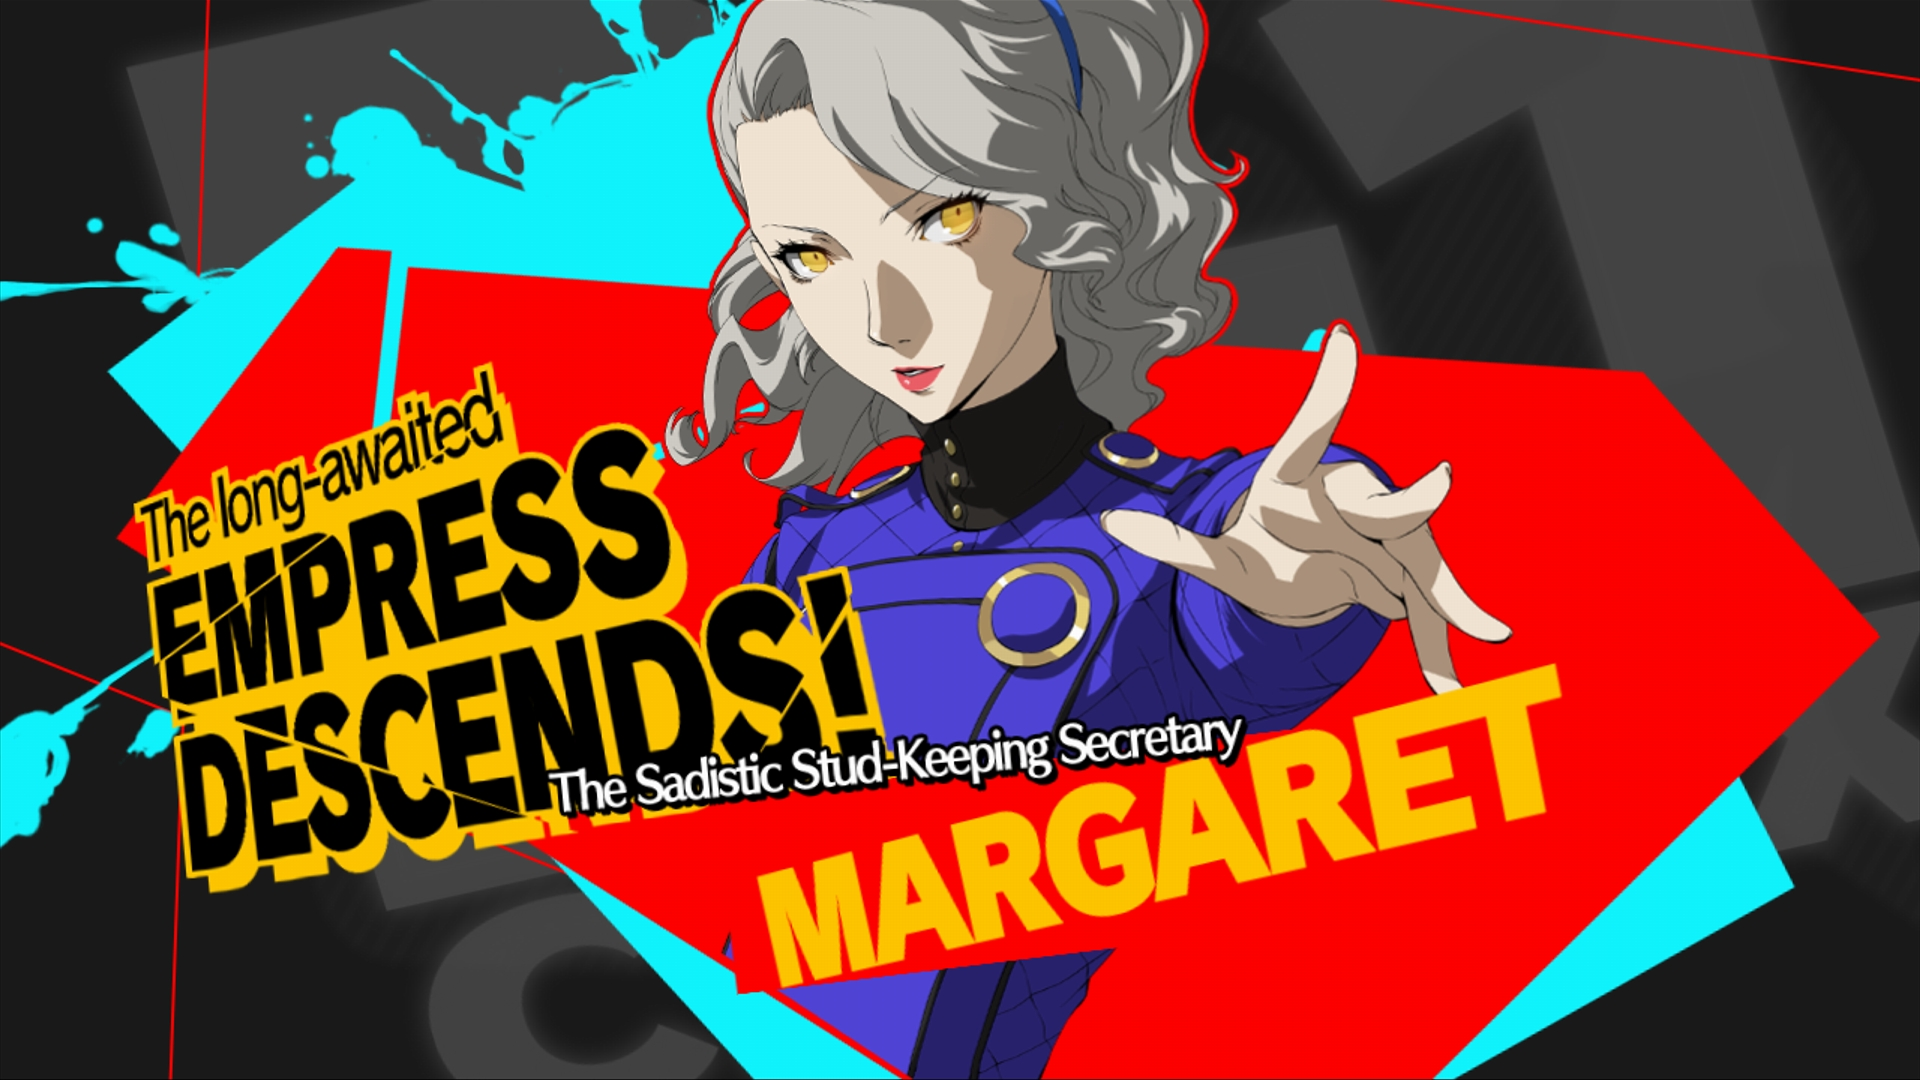 Margaret Confirmed as DLC Character for Persona 4 Arena